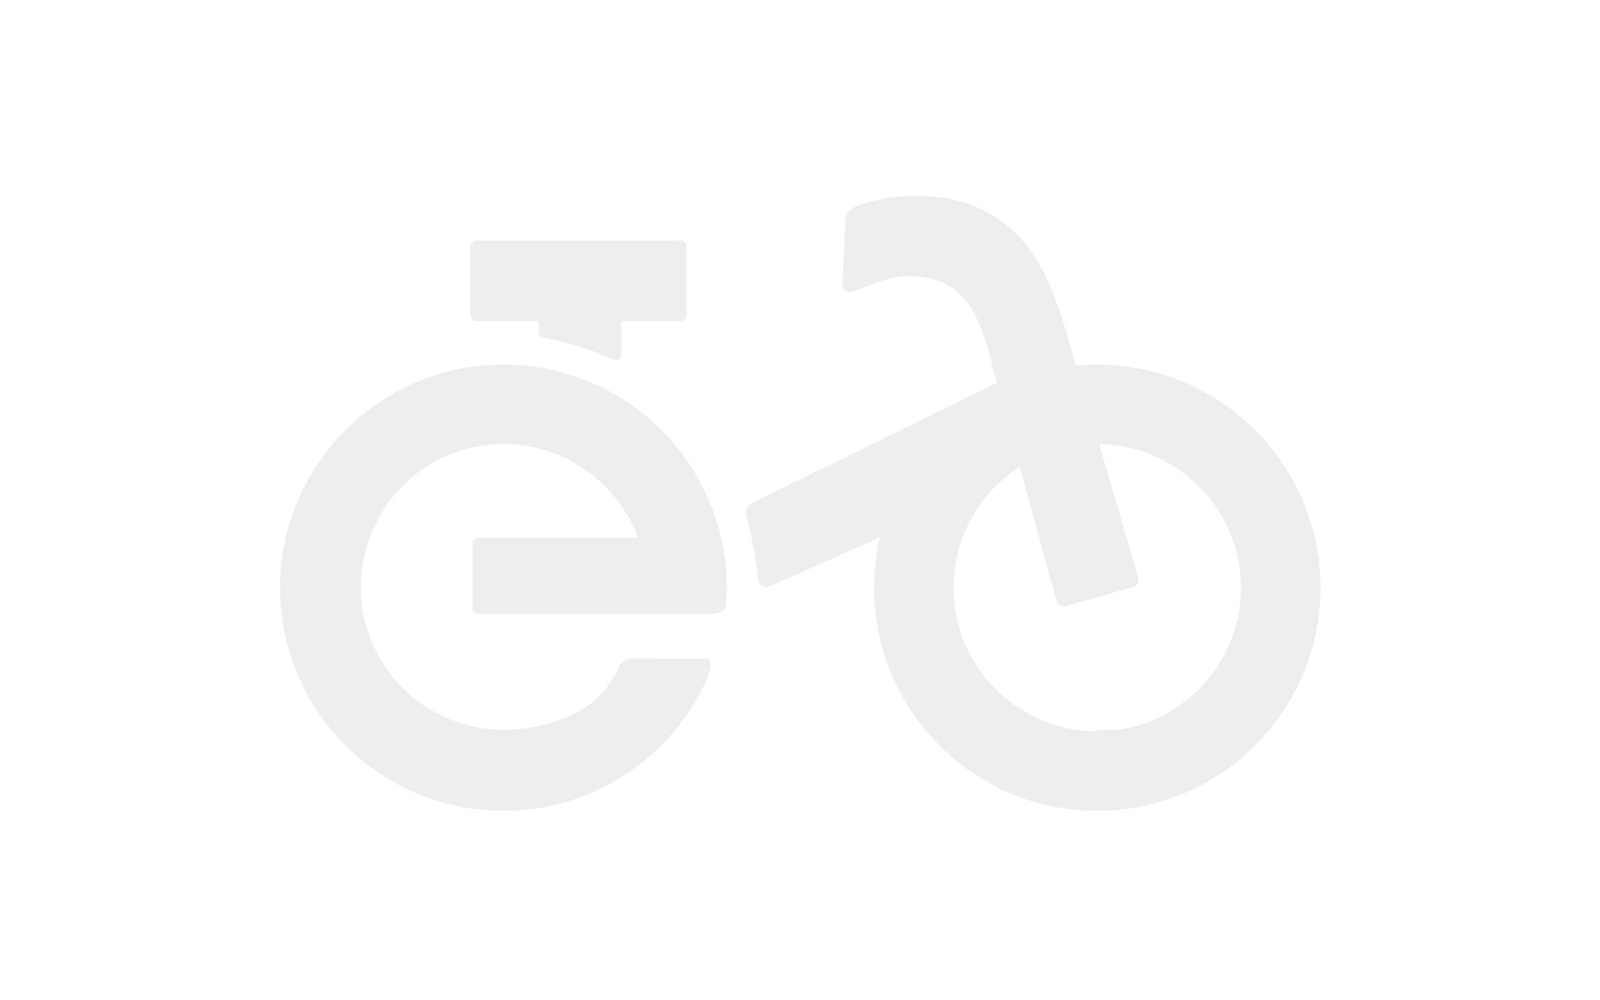 Giant TCX Advanced Pro 1 - M/L - Tweedekansje